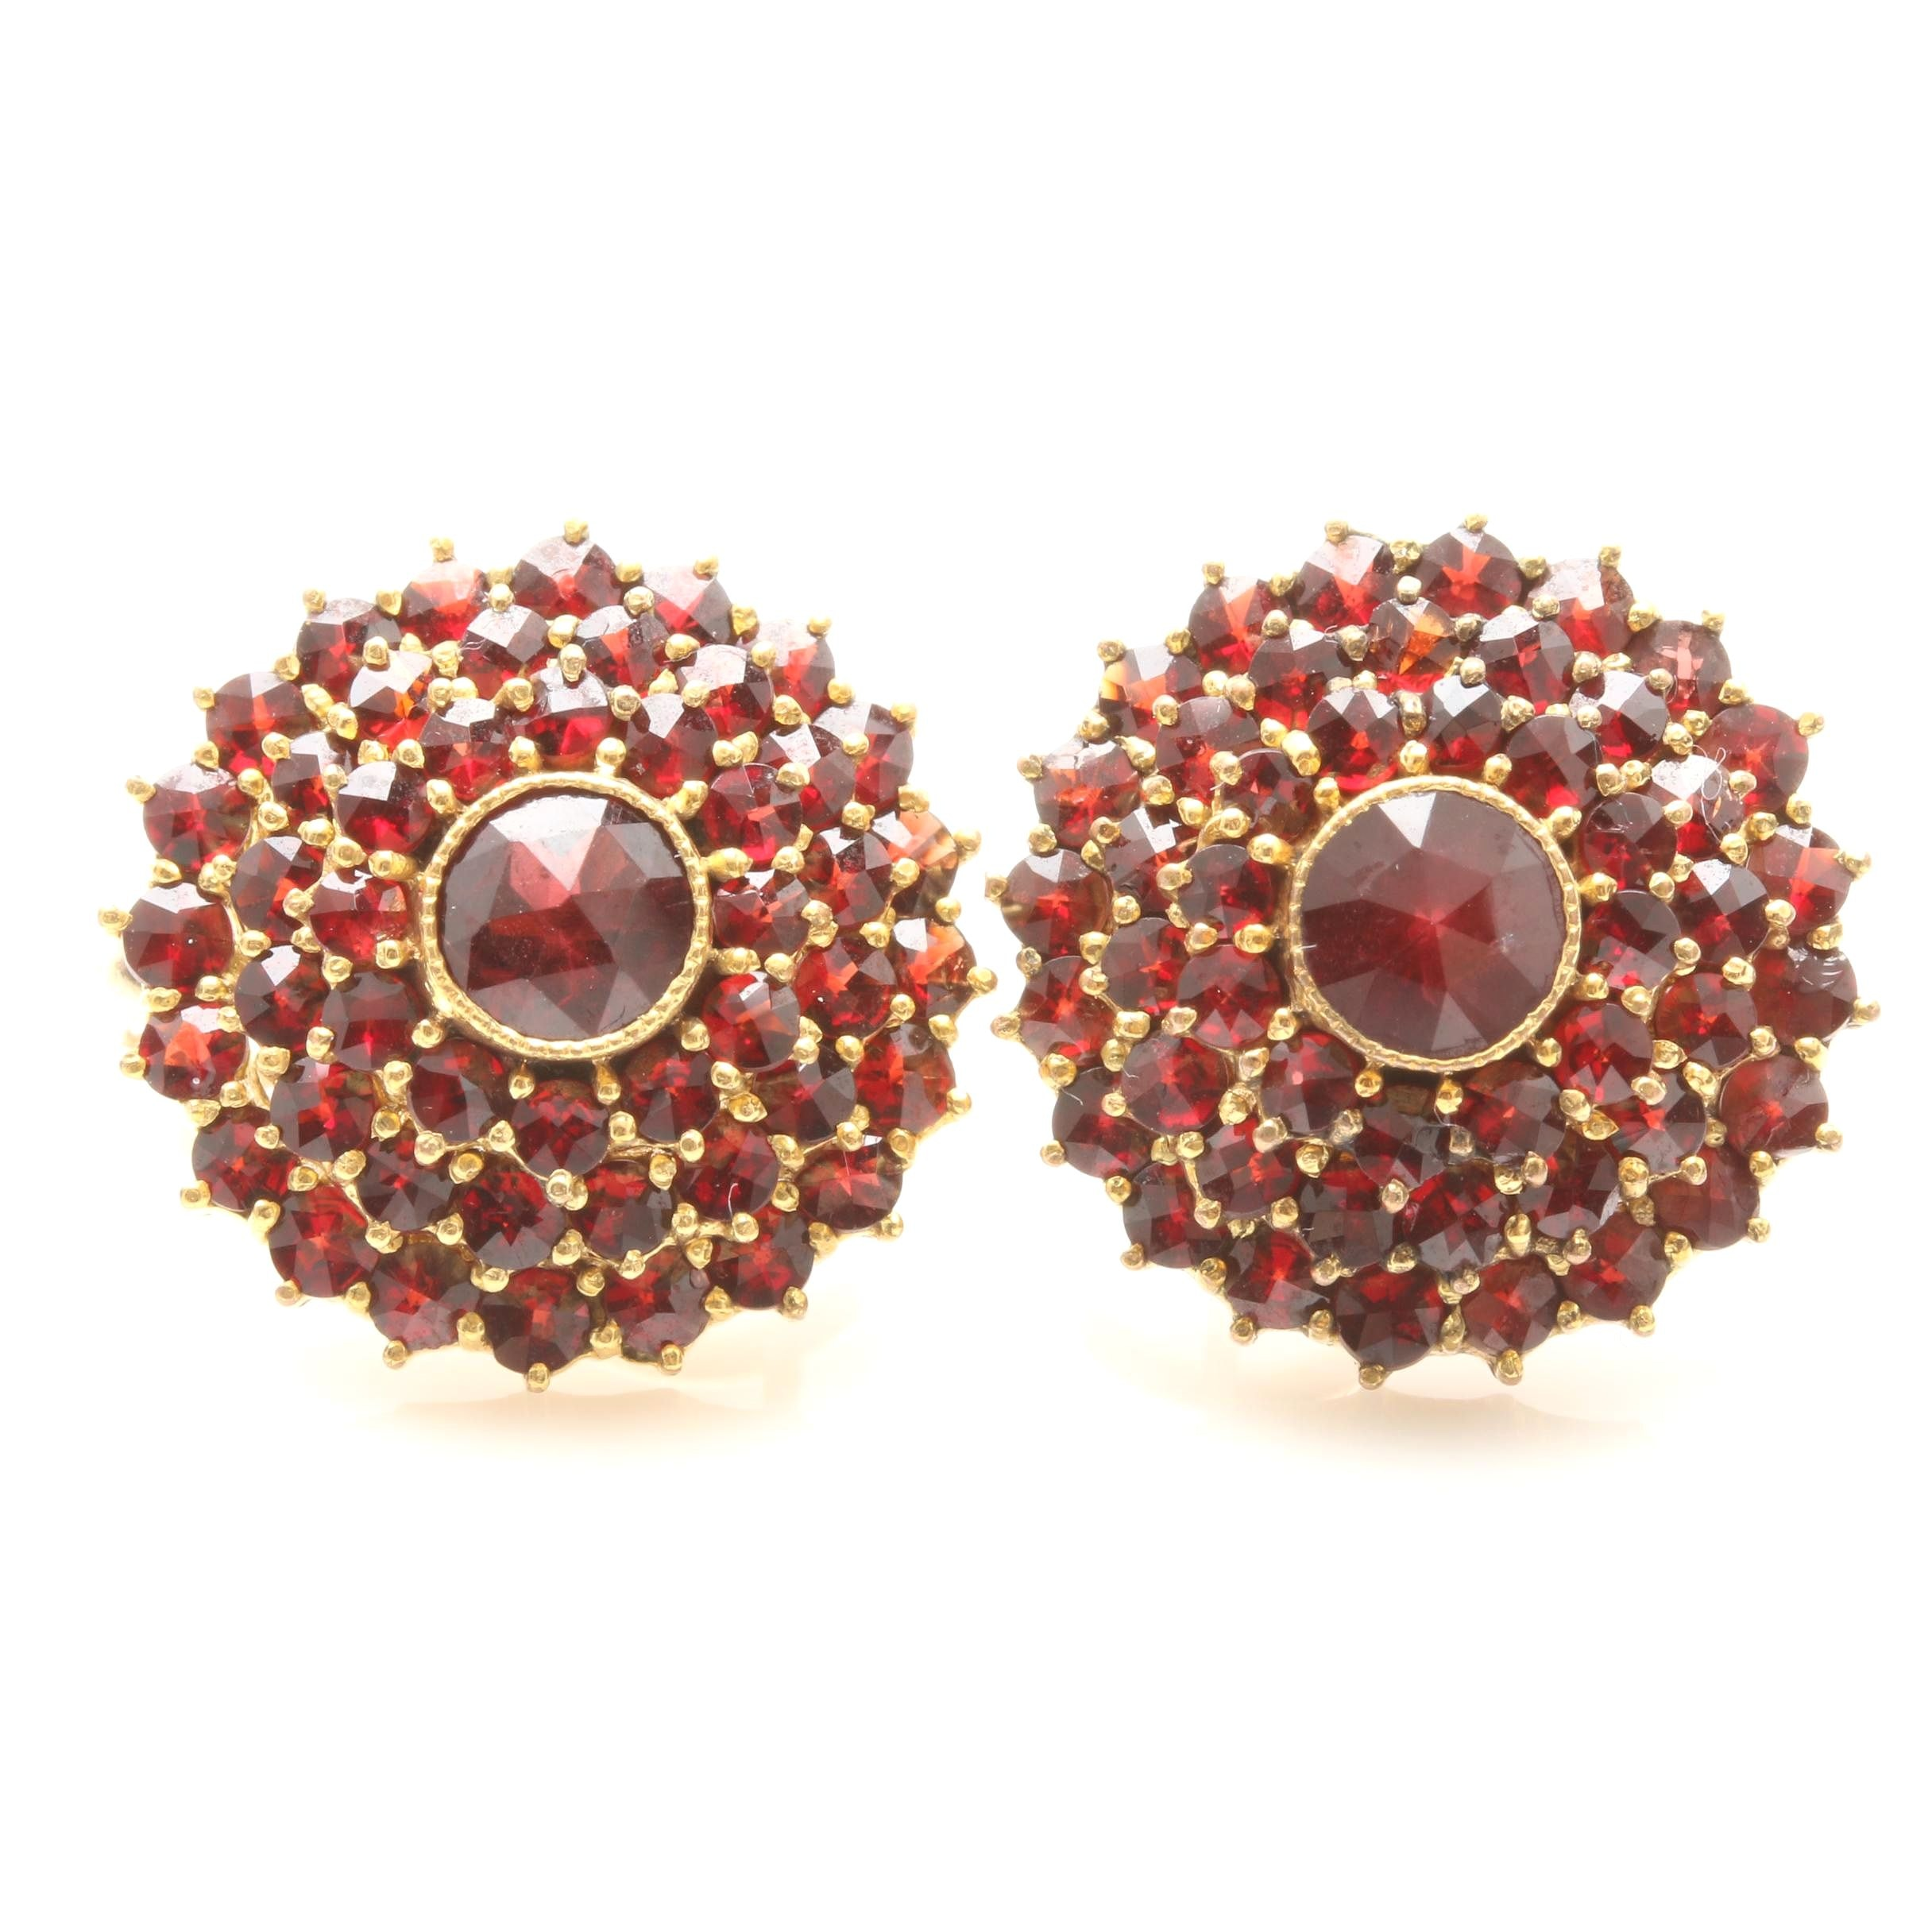 Vintage Garnet Earrings with 14K Yellow Gold Omega Backs